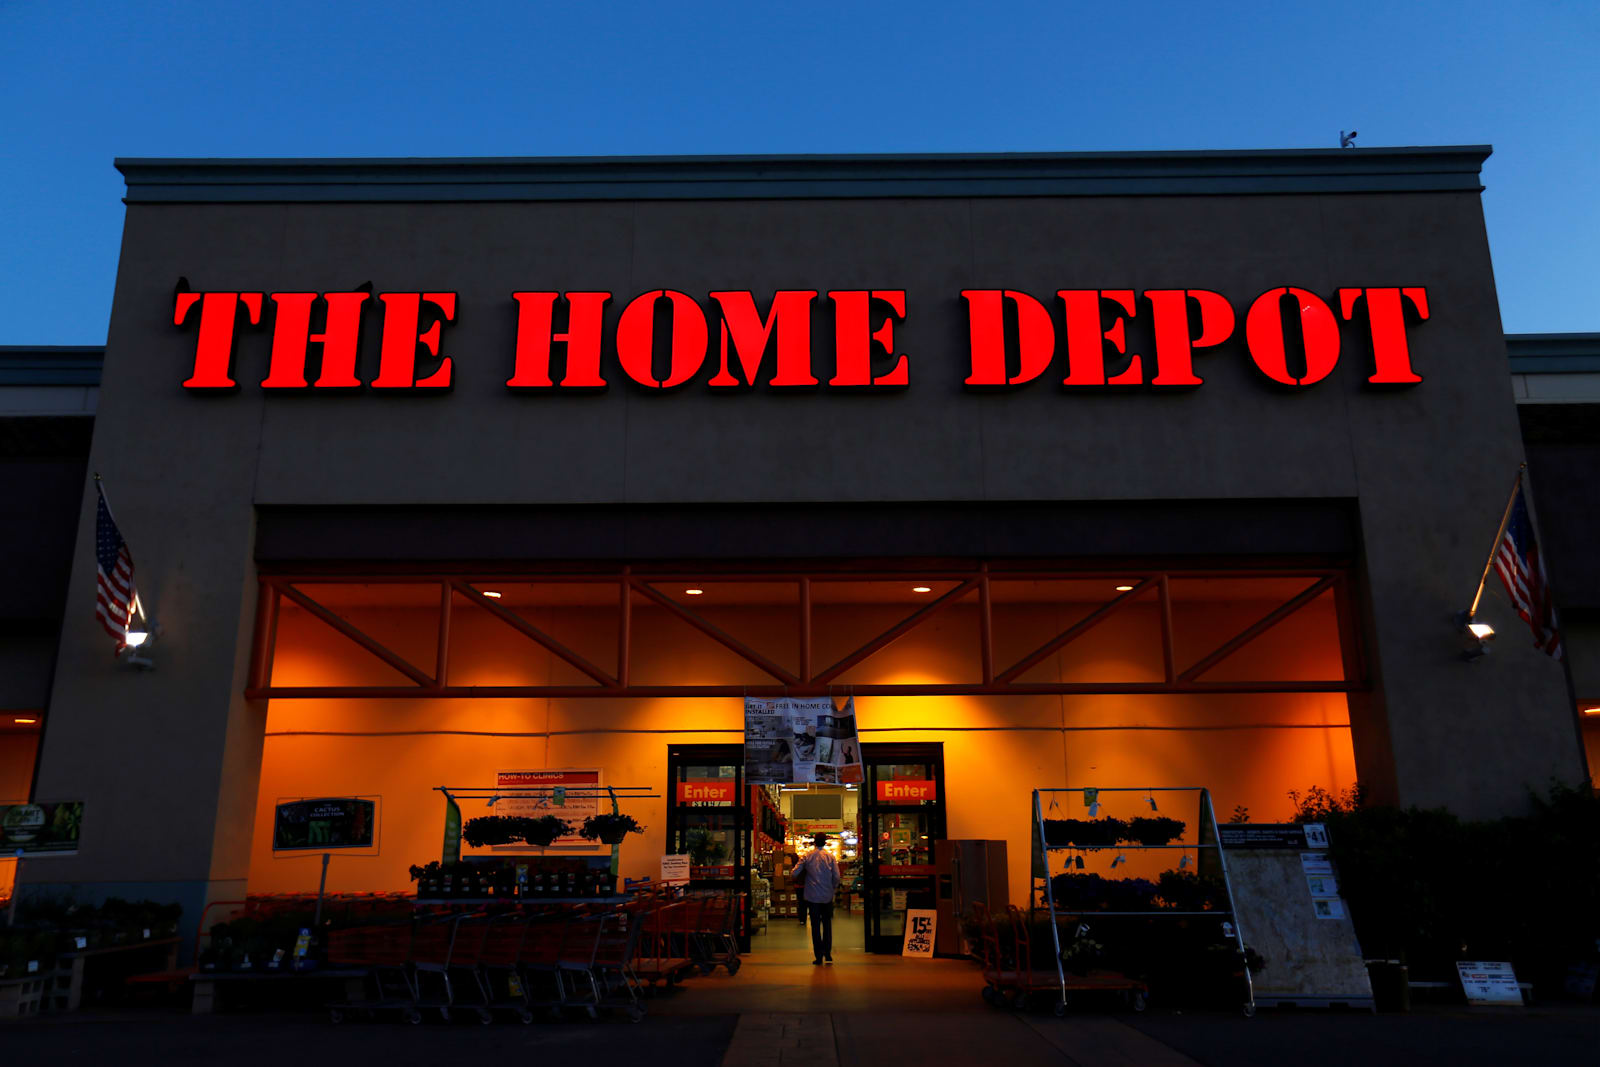 Official website for home depot - Mike Blake Reuters